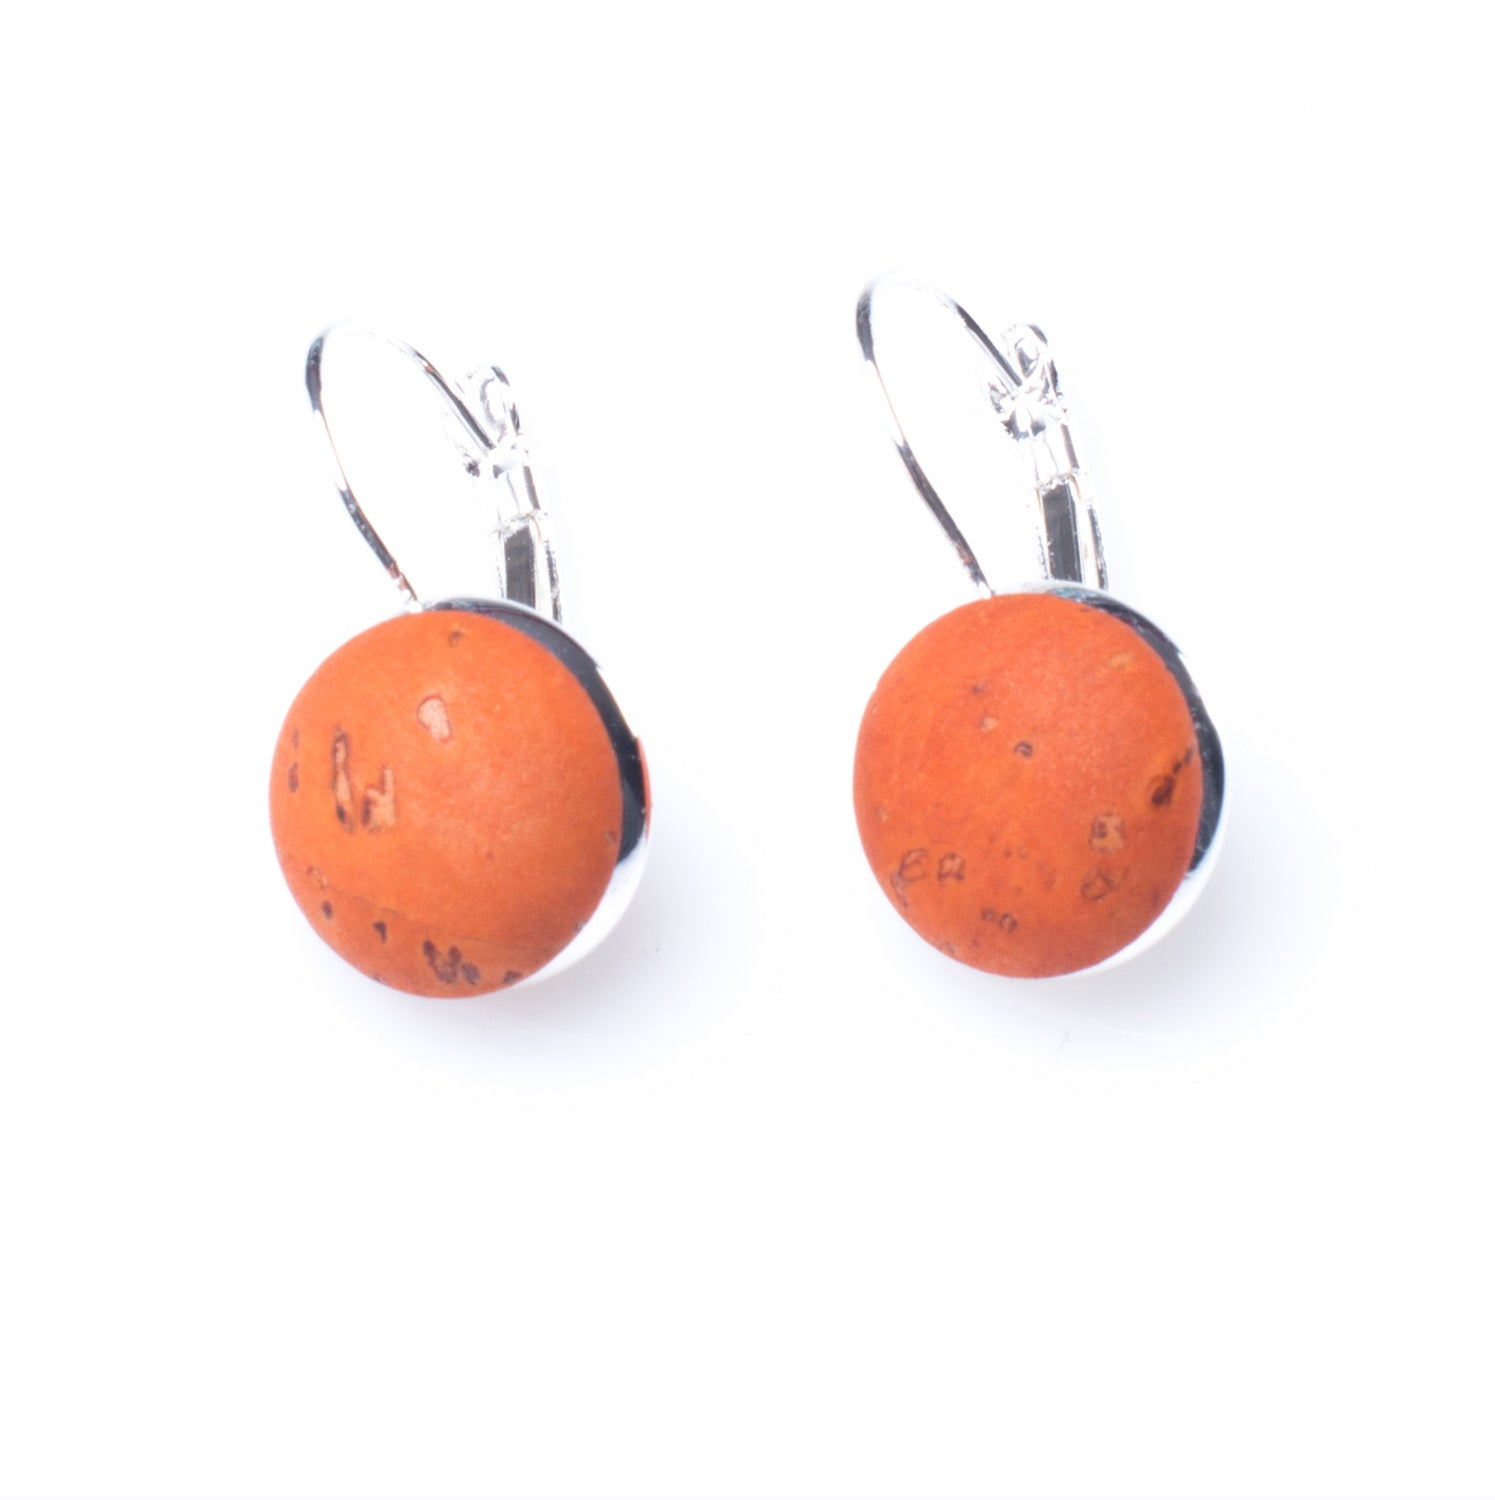 Hanging Cork Button Earrings | HowCork - The Cork Marketplace